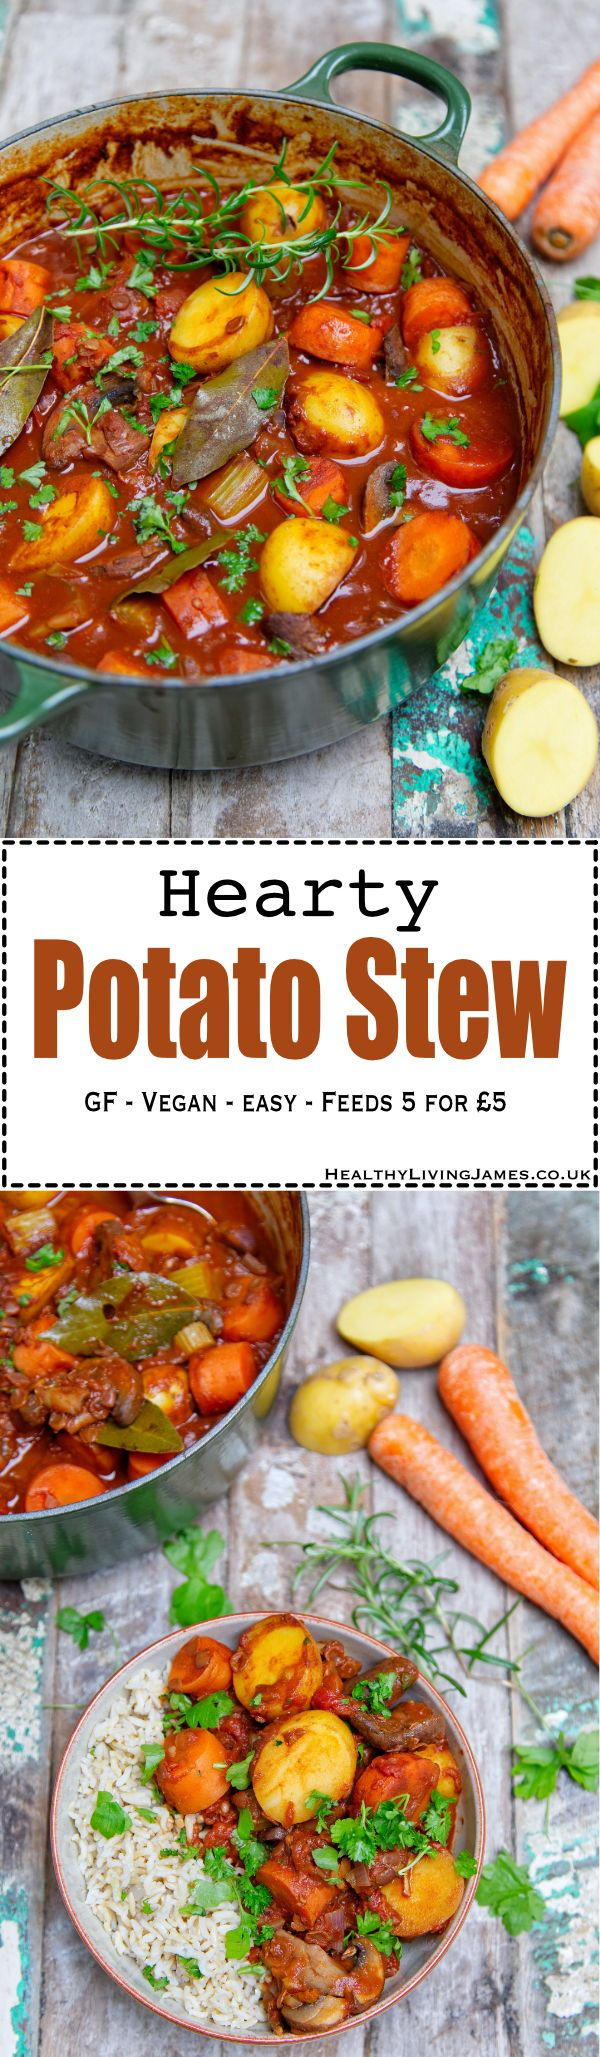 Hearty Potato Stew